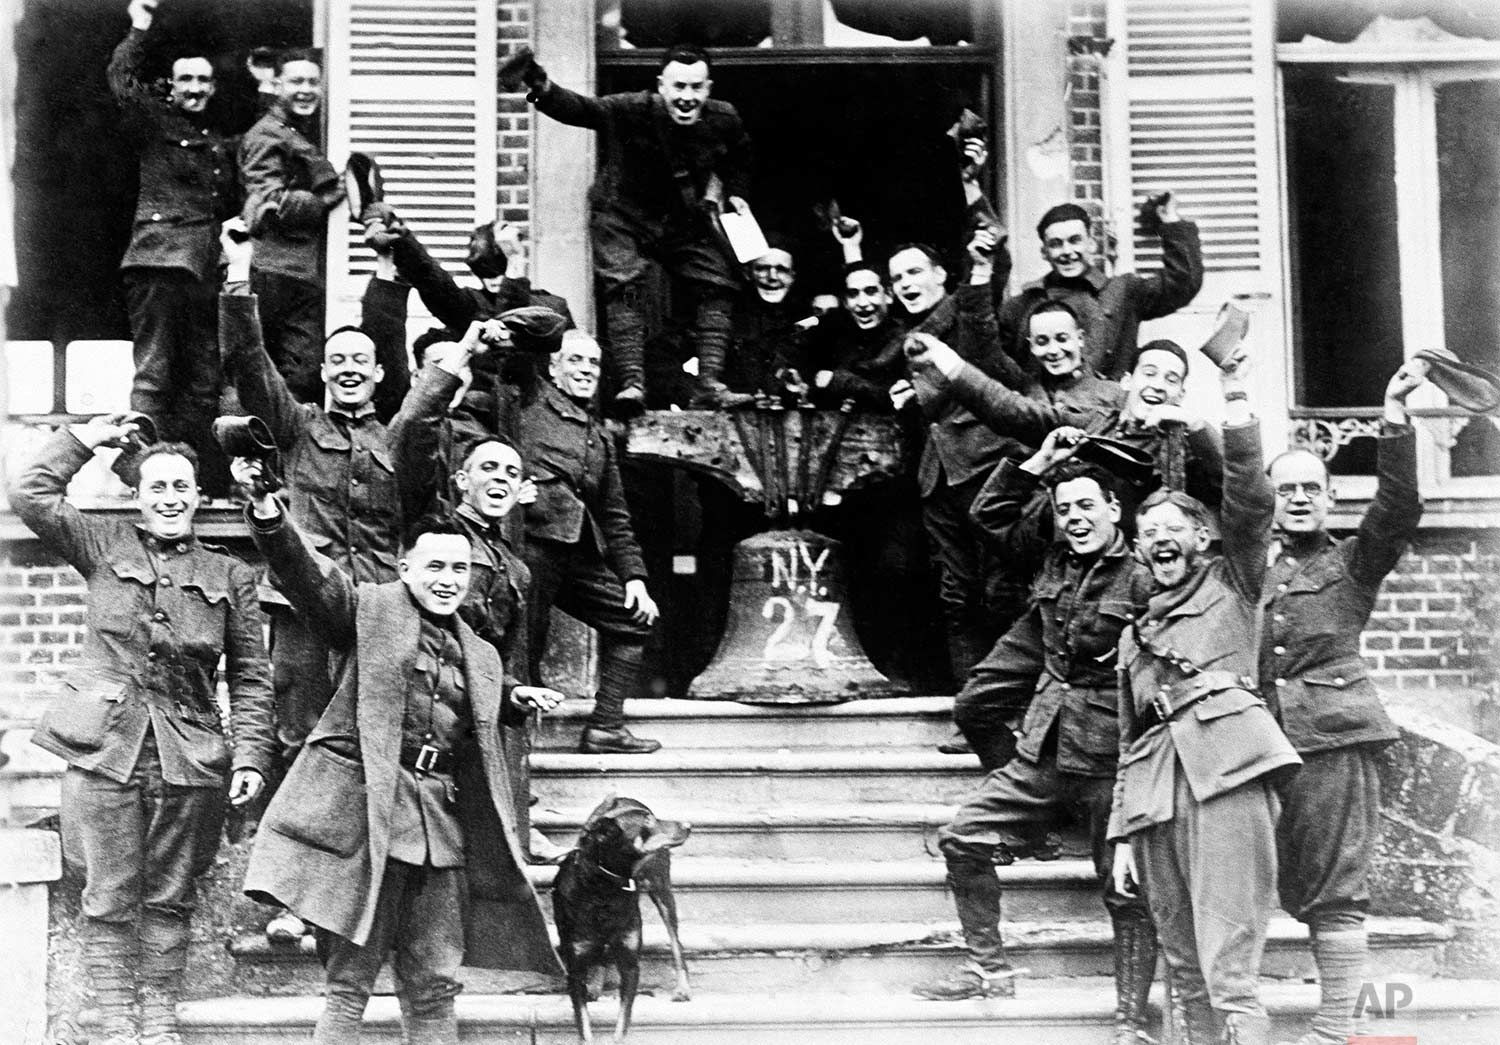 In this Nov. 1918 photo, American soldiers from New York, who served on the frontline in Cambria, France, rig up a Liberty Bell to celebrate the signing of the Armistice to end World War One. (AP Photo)